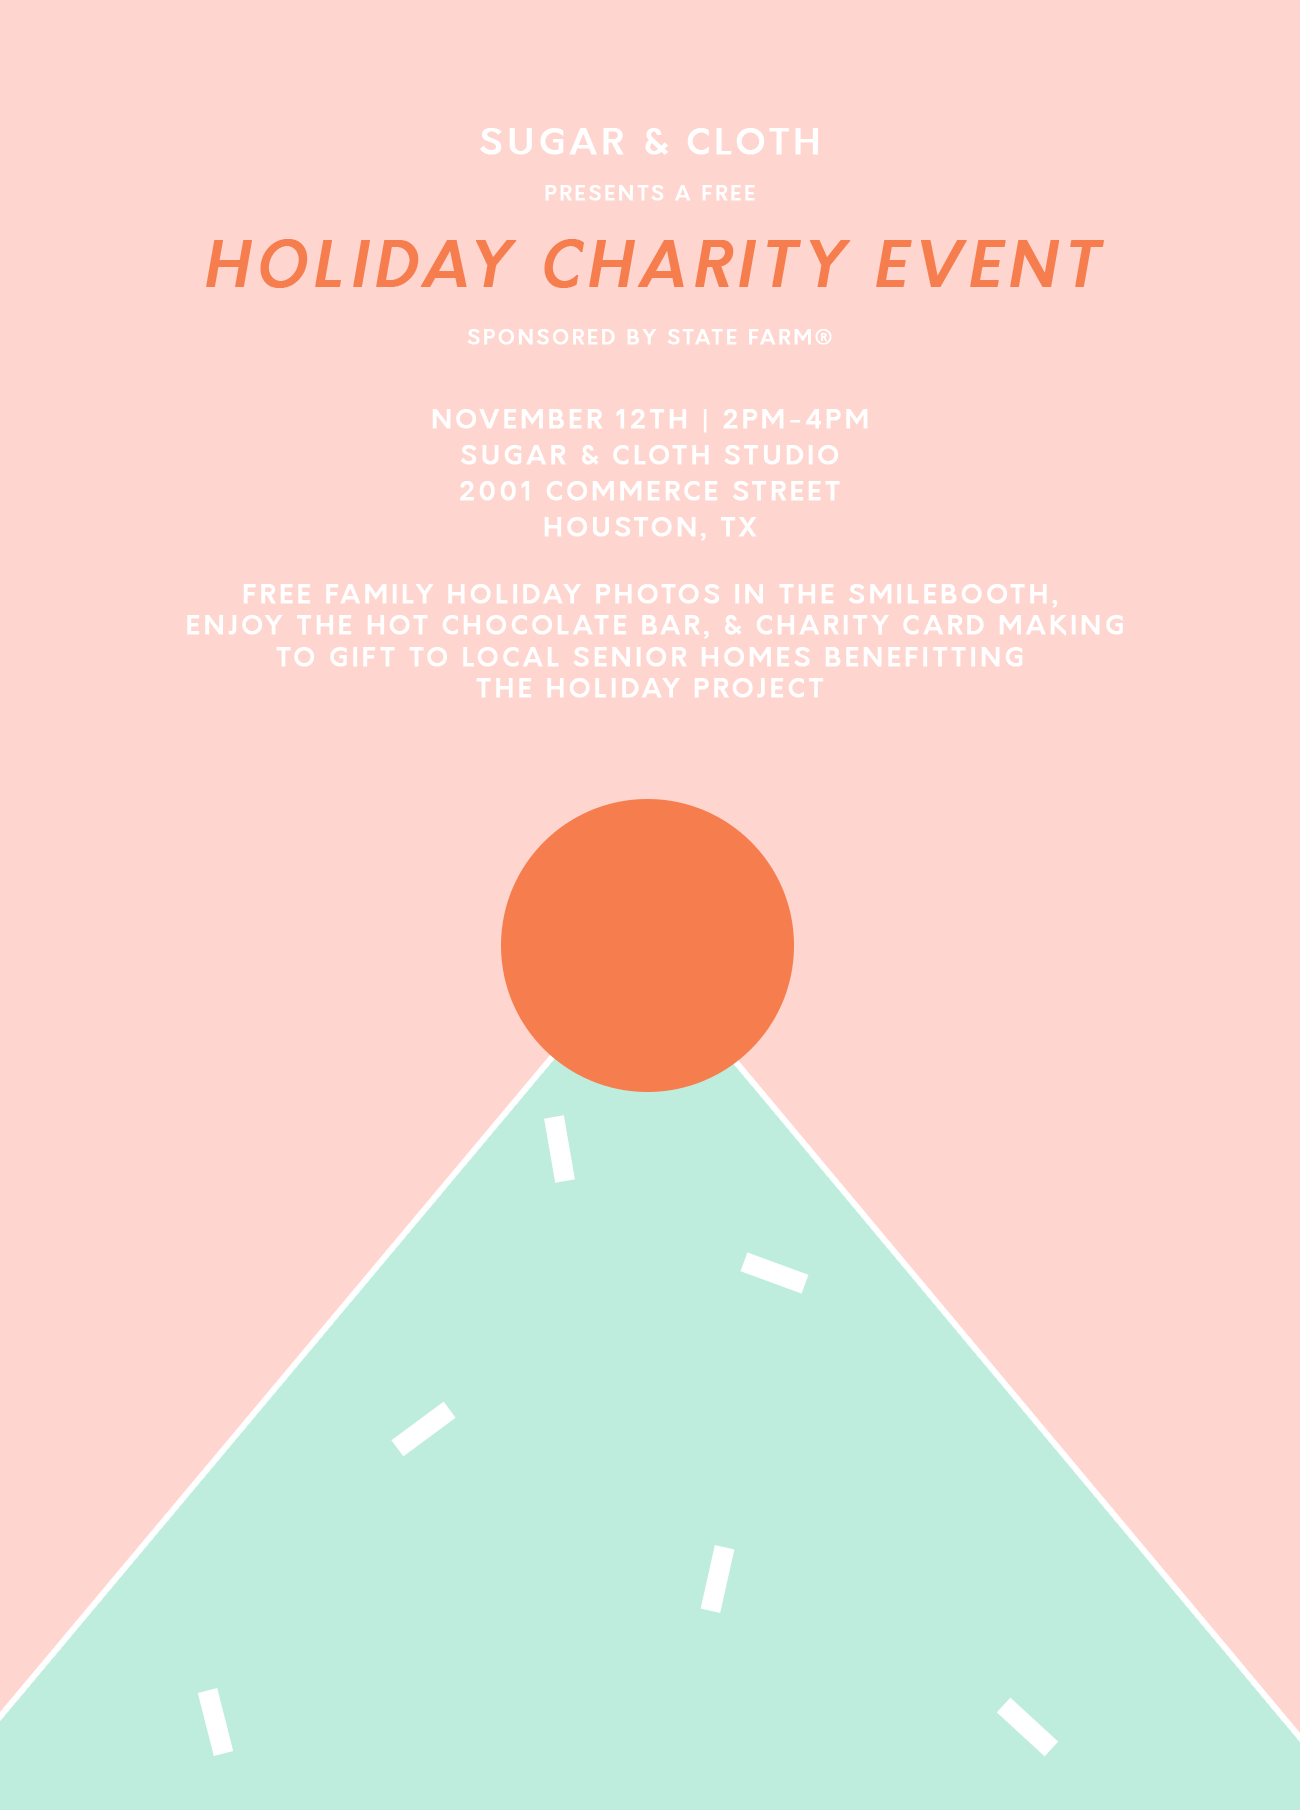 Our Free Charity Holiday Photo & Card Event at Sugar & Cloth Studio! by top Houston lifestyle blogger Ashley Rose of Sugar & Cloth